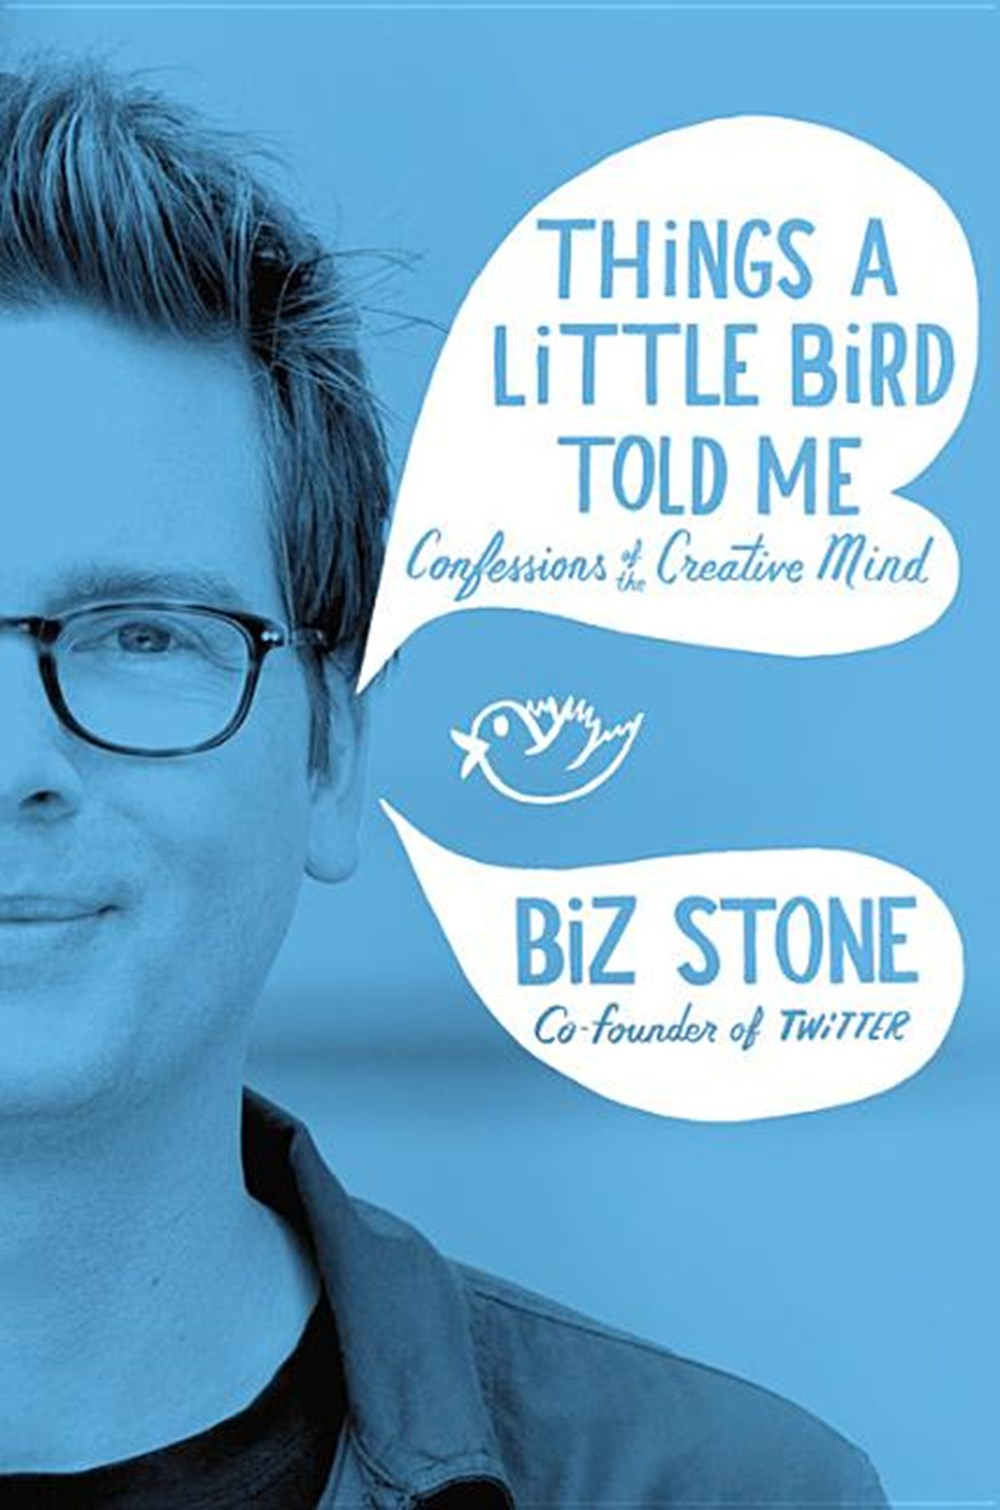 Things a Little Bird Told Me Creative Secrets from the Co-Founder of Twitter